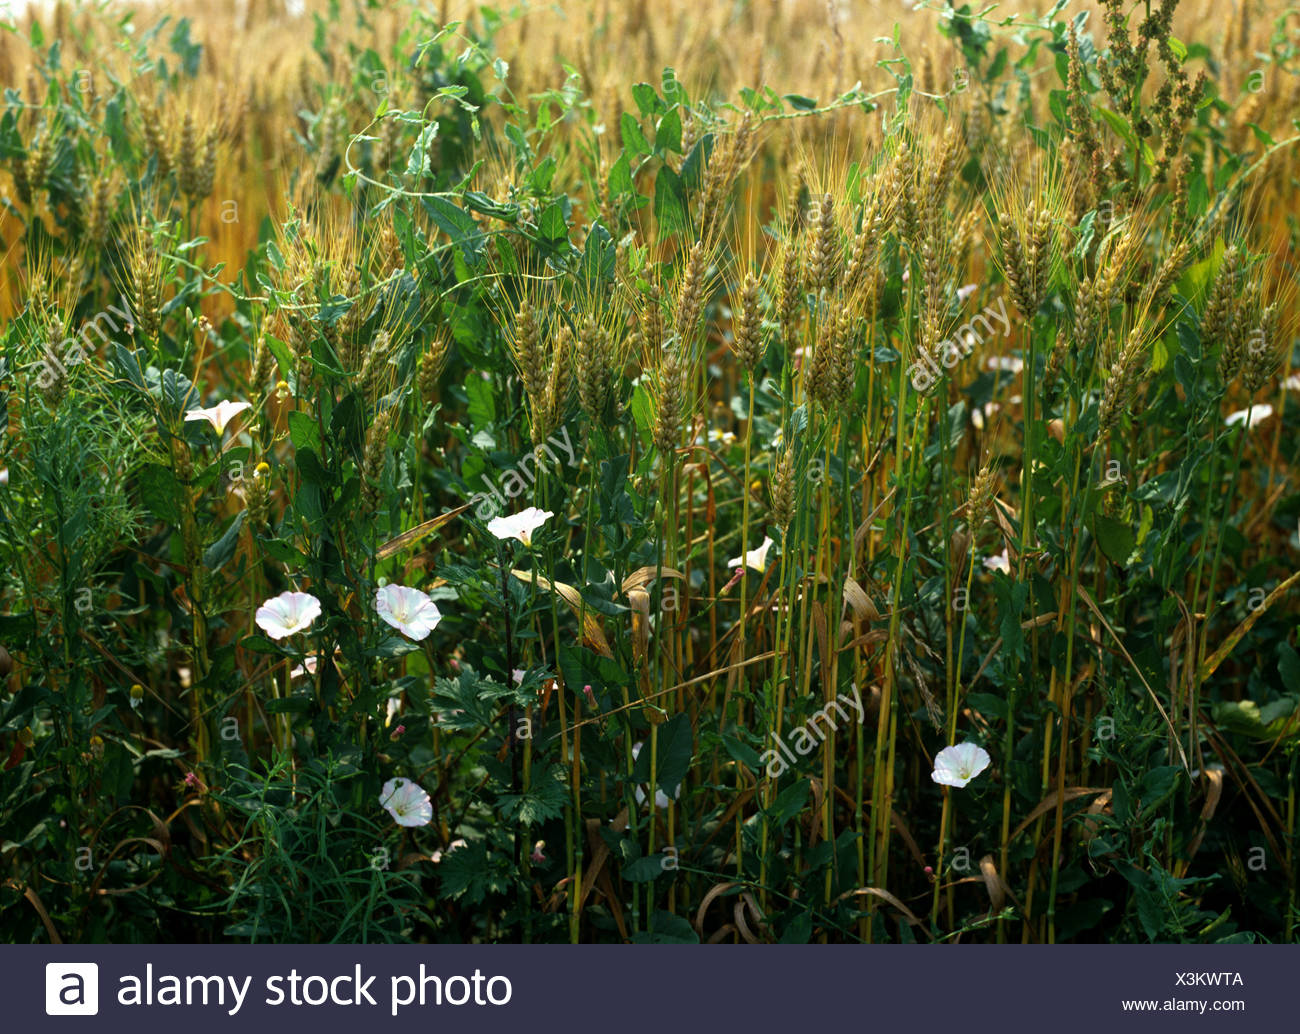 Field bindweed (Convolvulus arvensis) annual flowering arable weed in a wheat crop, France - Stock Image